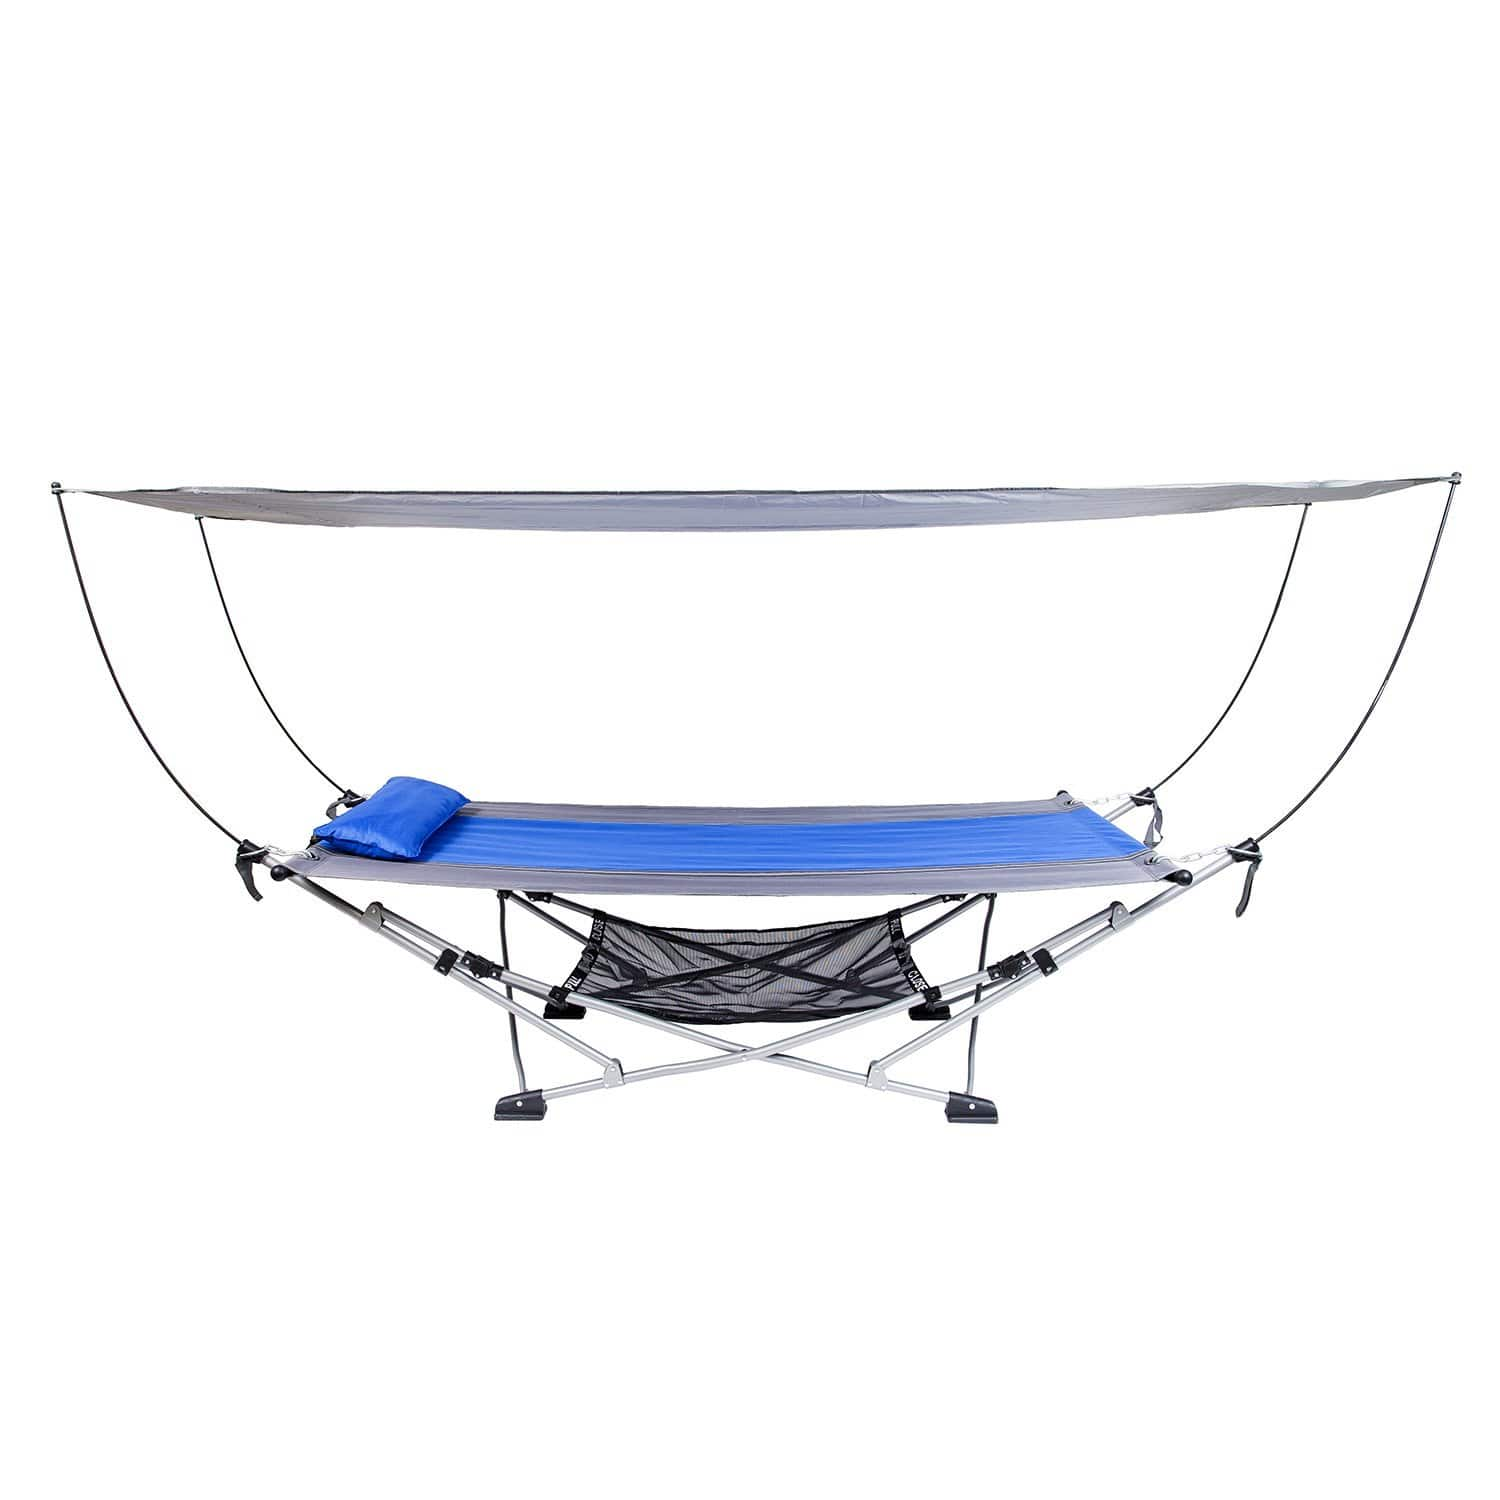 Ozark Trail Folding Hammock Cushions For Futons And